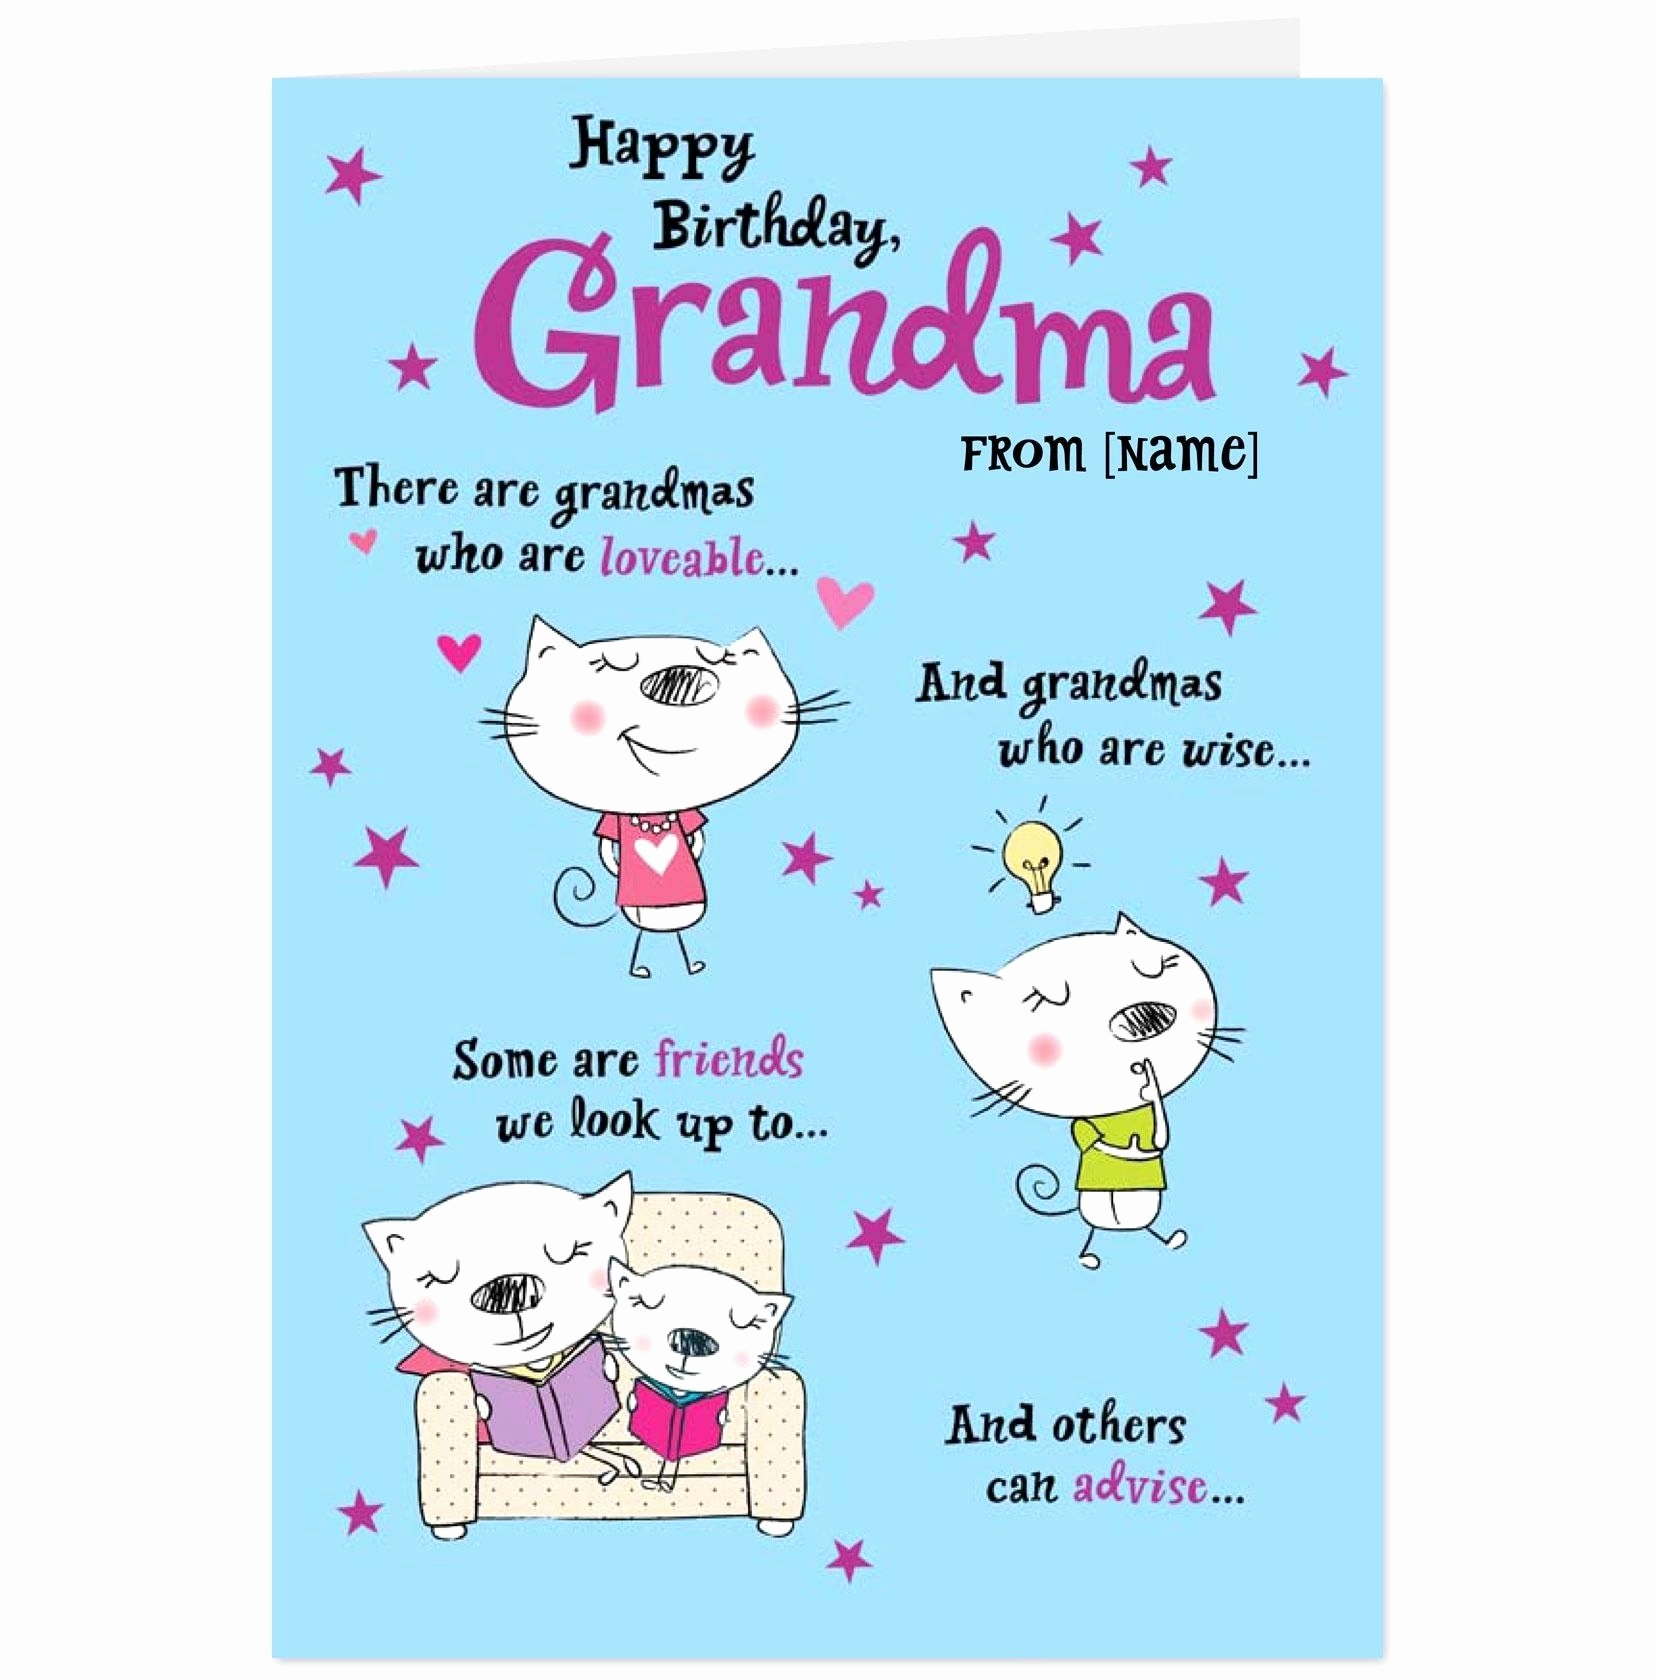 happy birthday grandma funny ; grandma-birthday-quotes-fresh-happy-birthday-grandma-quotes-lovely-funny-greetings-quotes-image-of-grandma-birthday-quotes